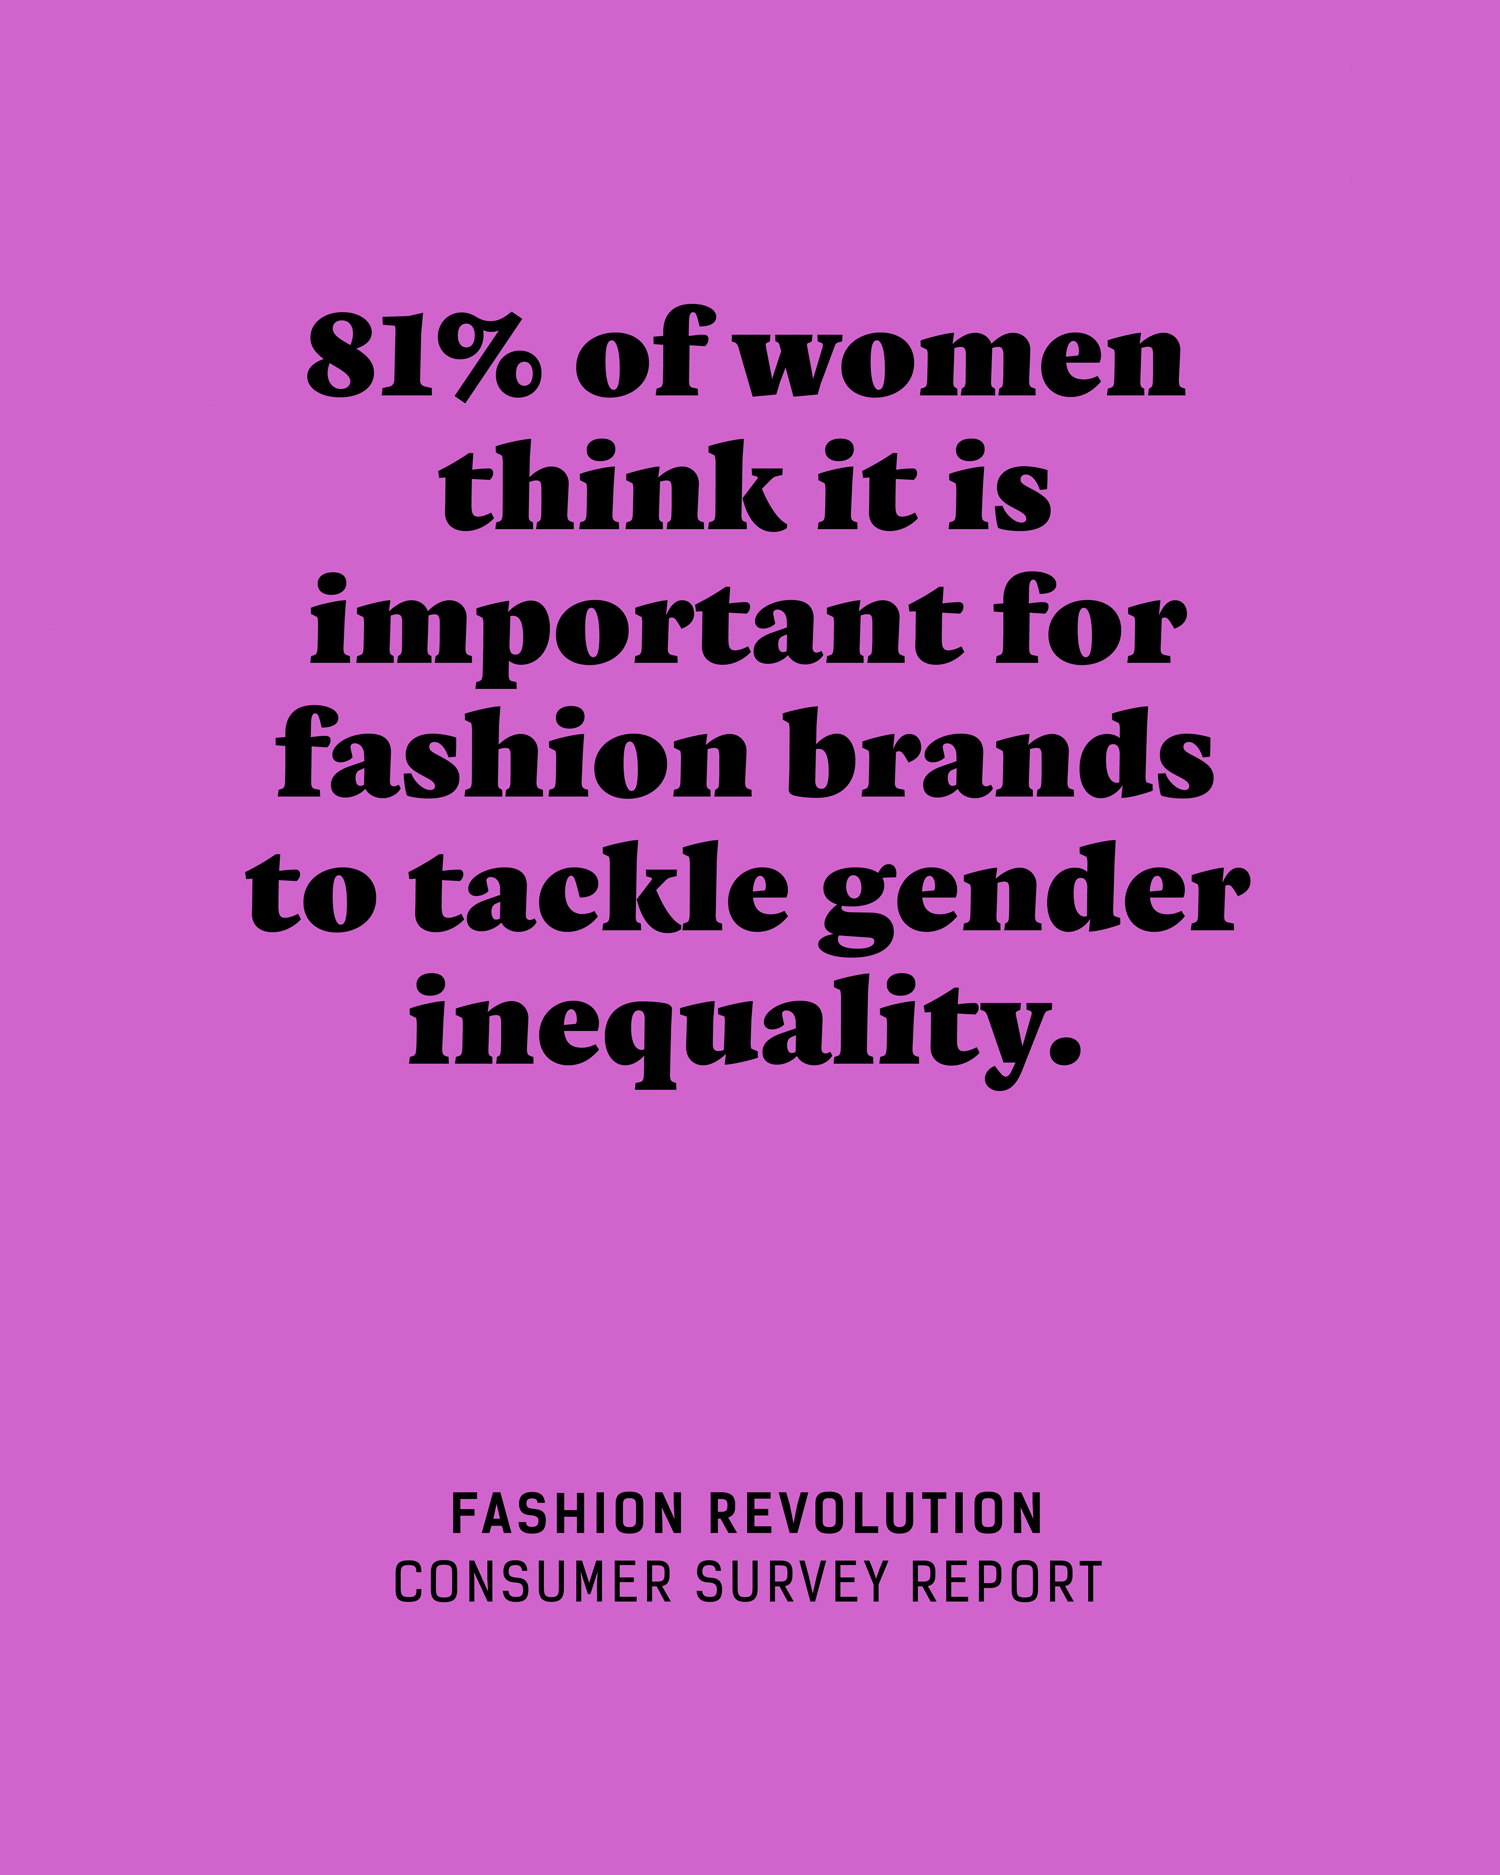 fashion-revolution-consumer-survey.jpg